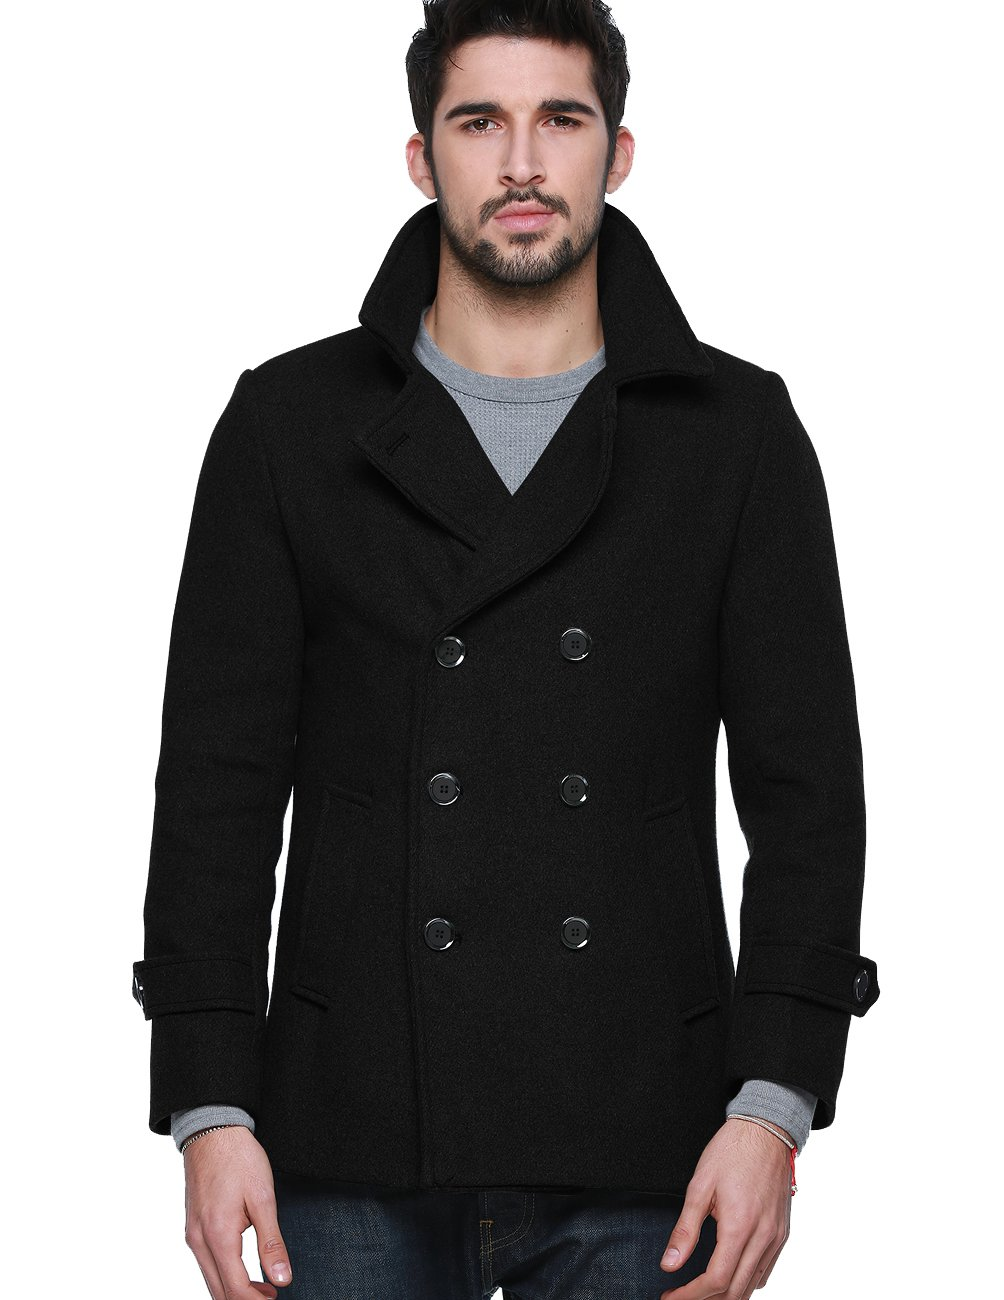 Match Mens Wool Blend Classic Pea Coat Winter Coat (US XS/CN M (Fit 32''-34''), 010-Black) by Match